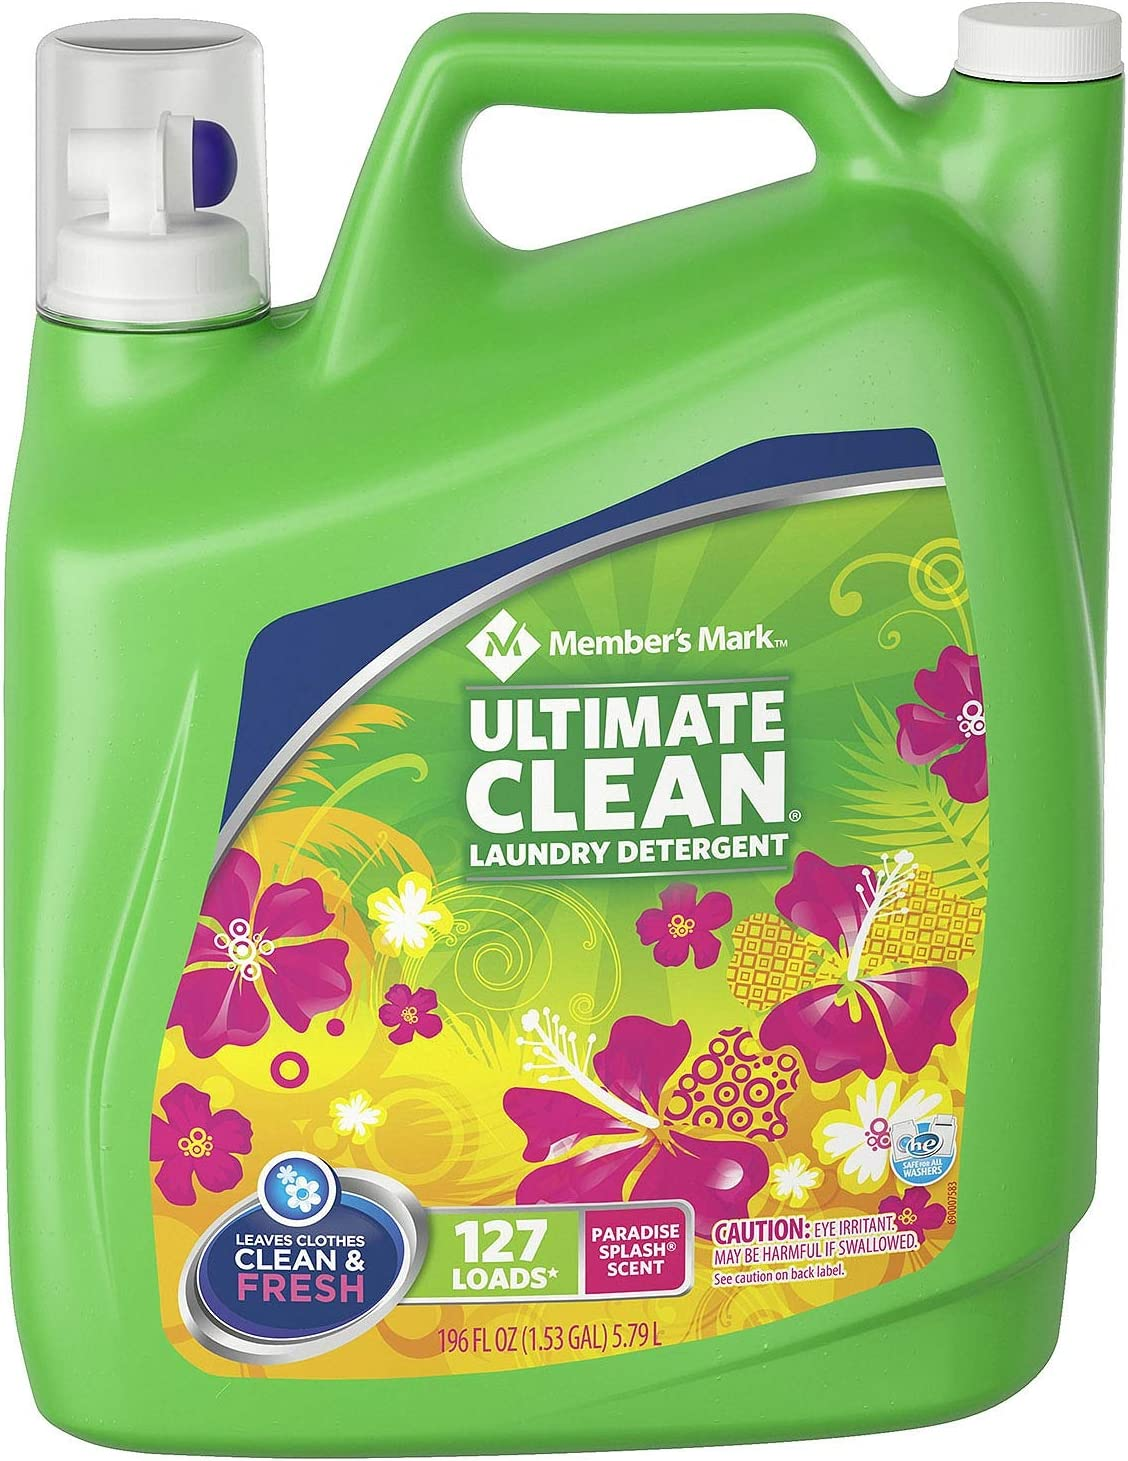 Member's Mark Ultimate Clean Laundry Detergent, Paradise Splash, 127 loads